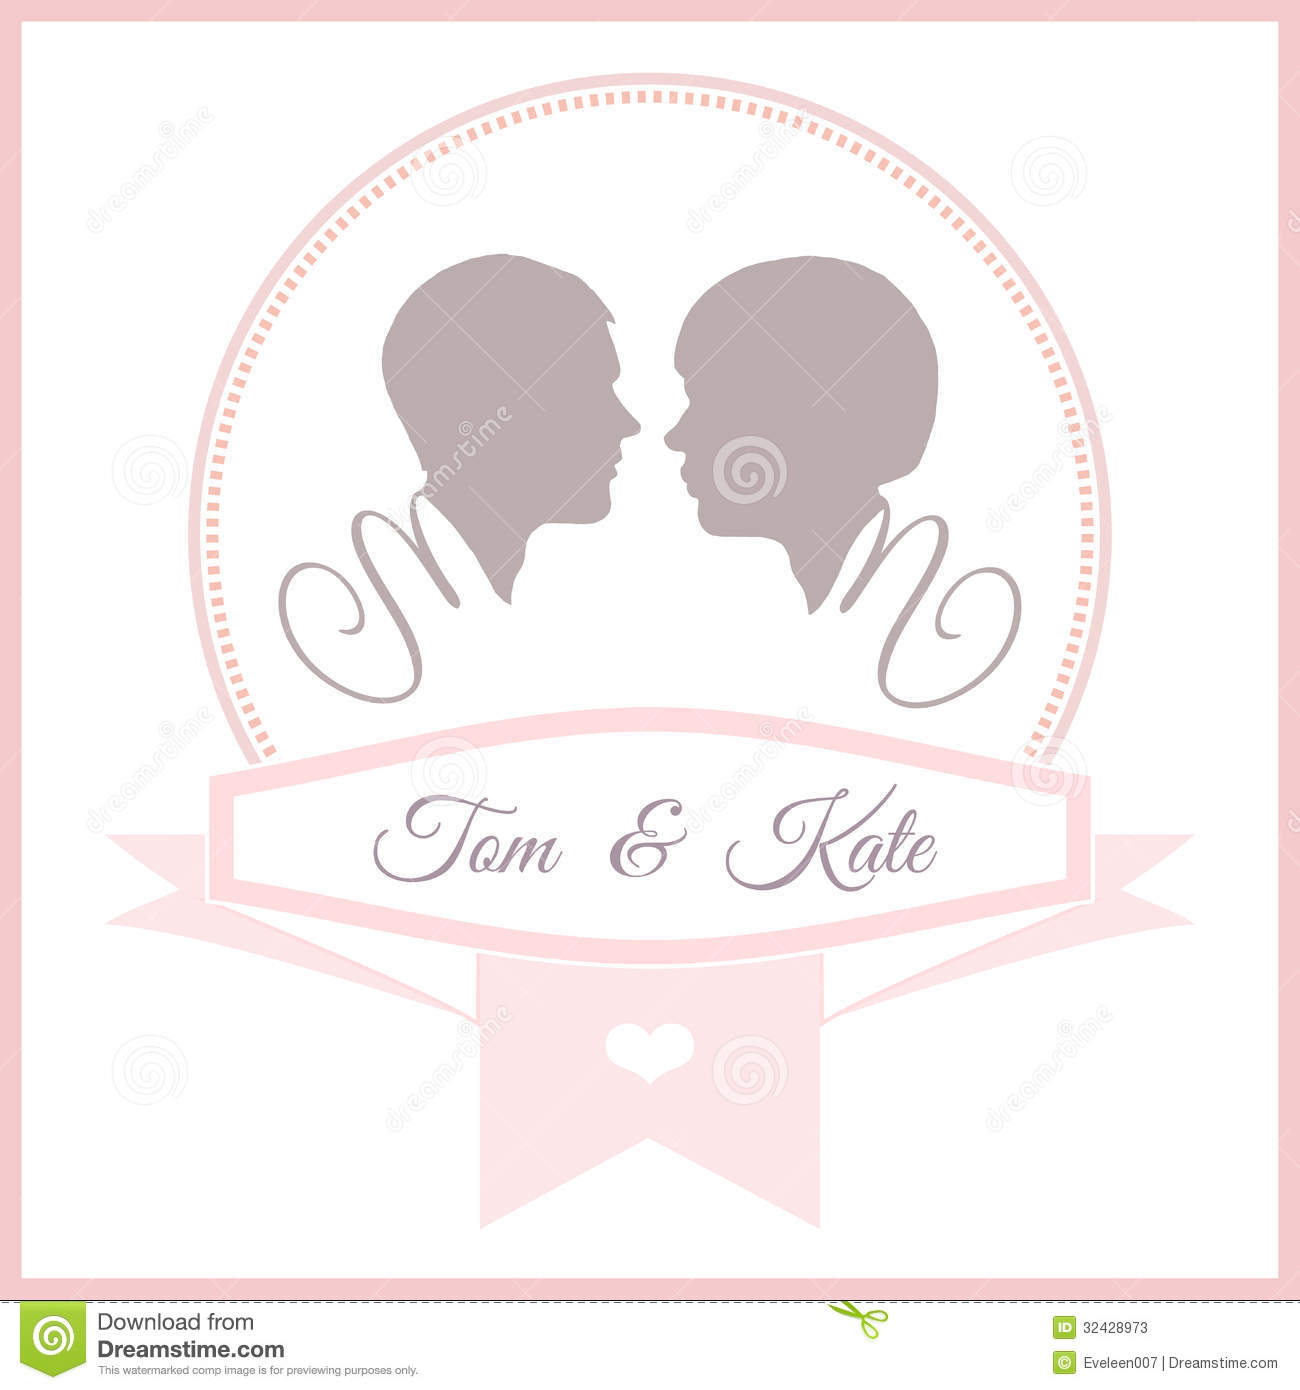 wedding invitation card template stock vector illustration of marriage graphic 32428973. Black Bedroom Furniture Sets. Home Design Ideas